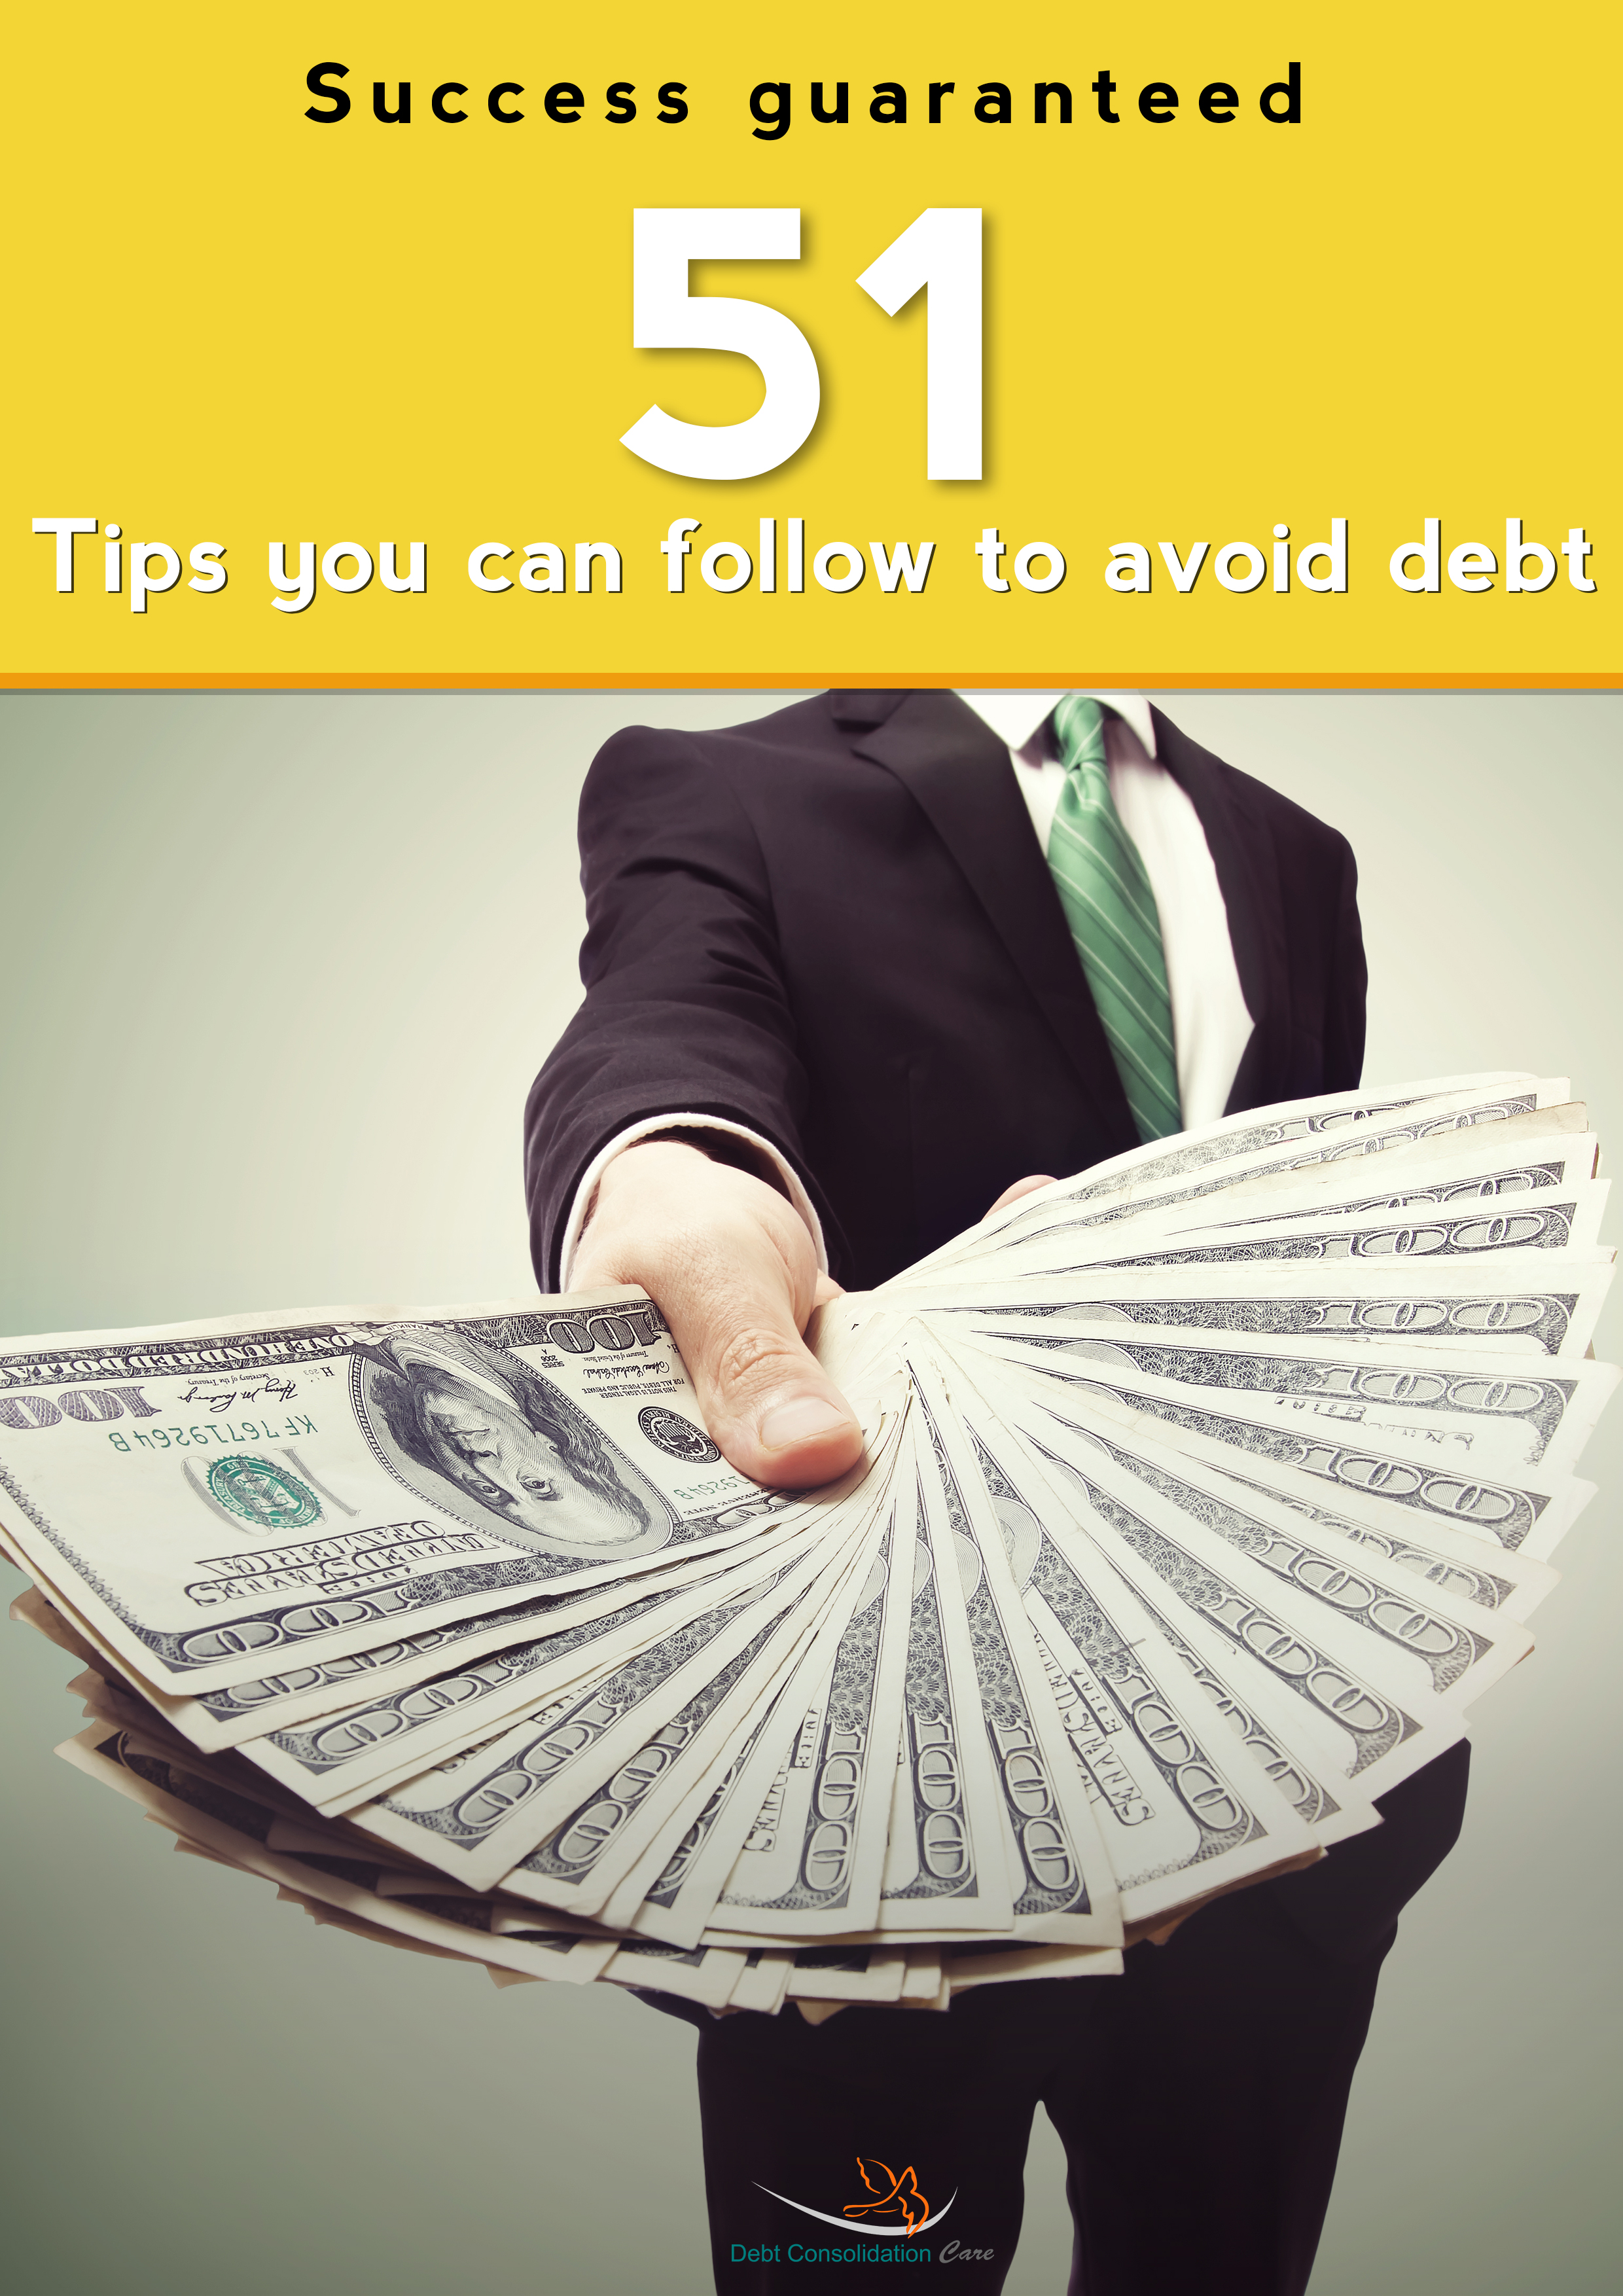 banner image Avoid debt to manage your finances efficiently